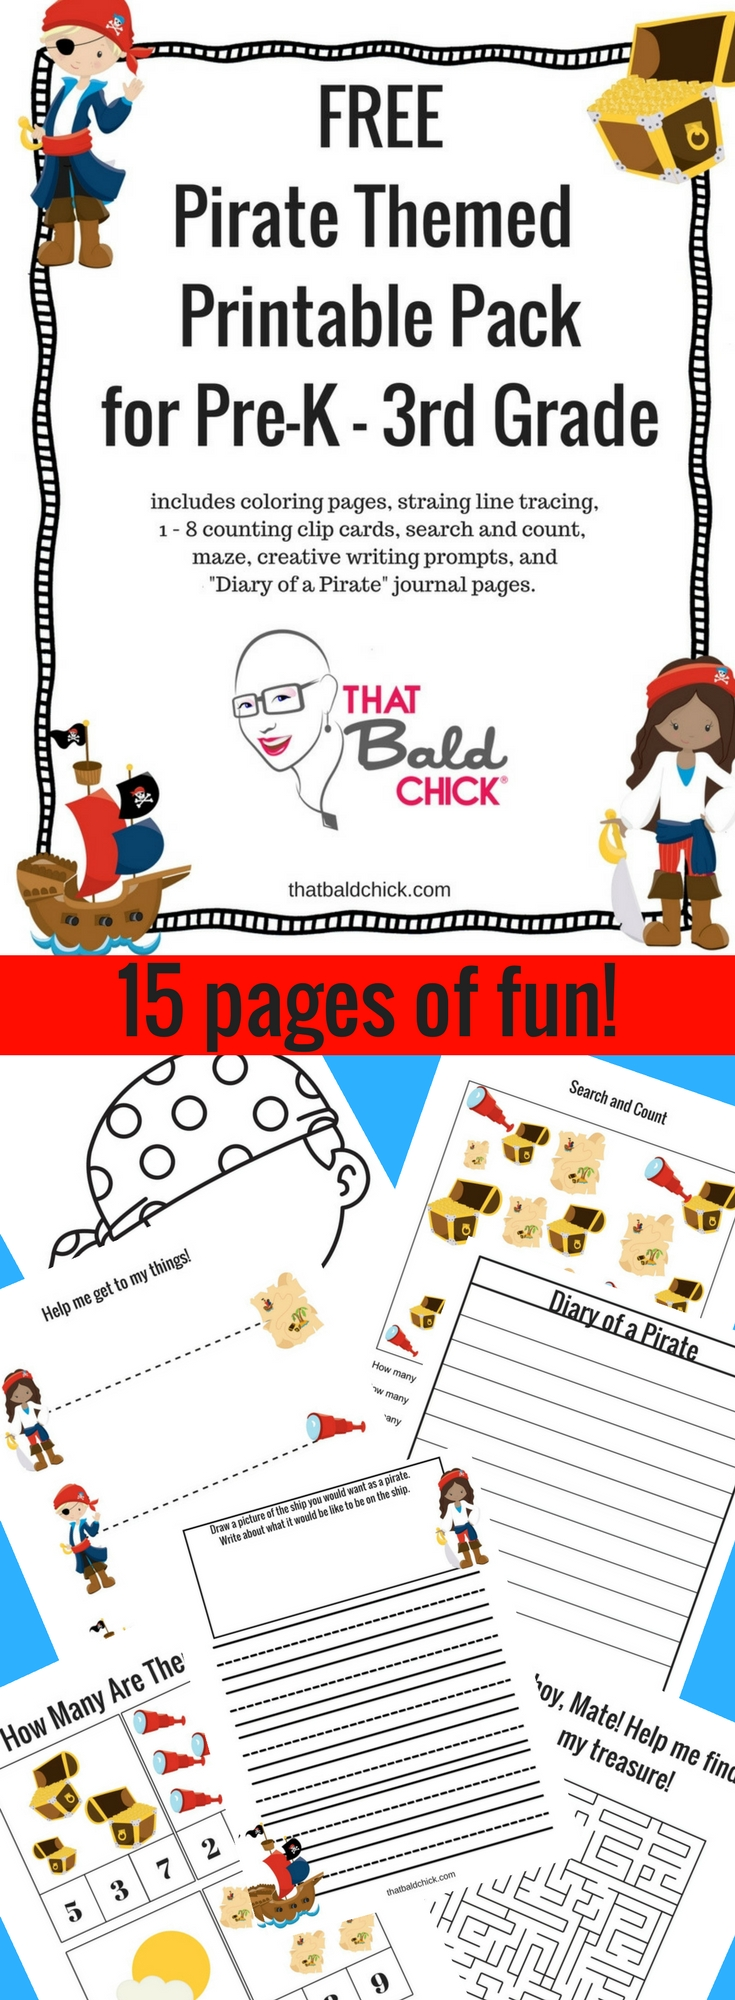 Ahoy! Get this fun 15 page pirate themed printable as a subscriber freebie at homeschoolsteamboat.com